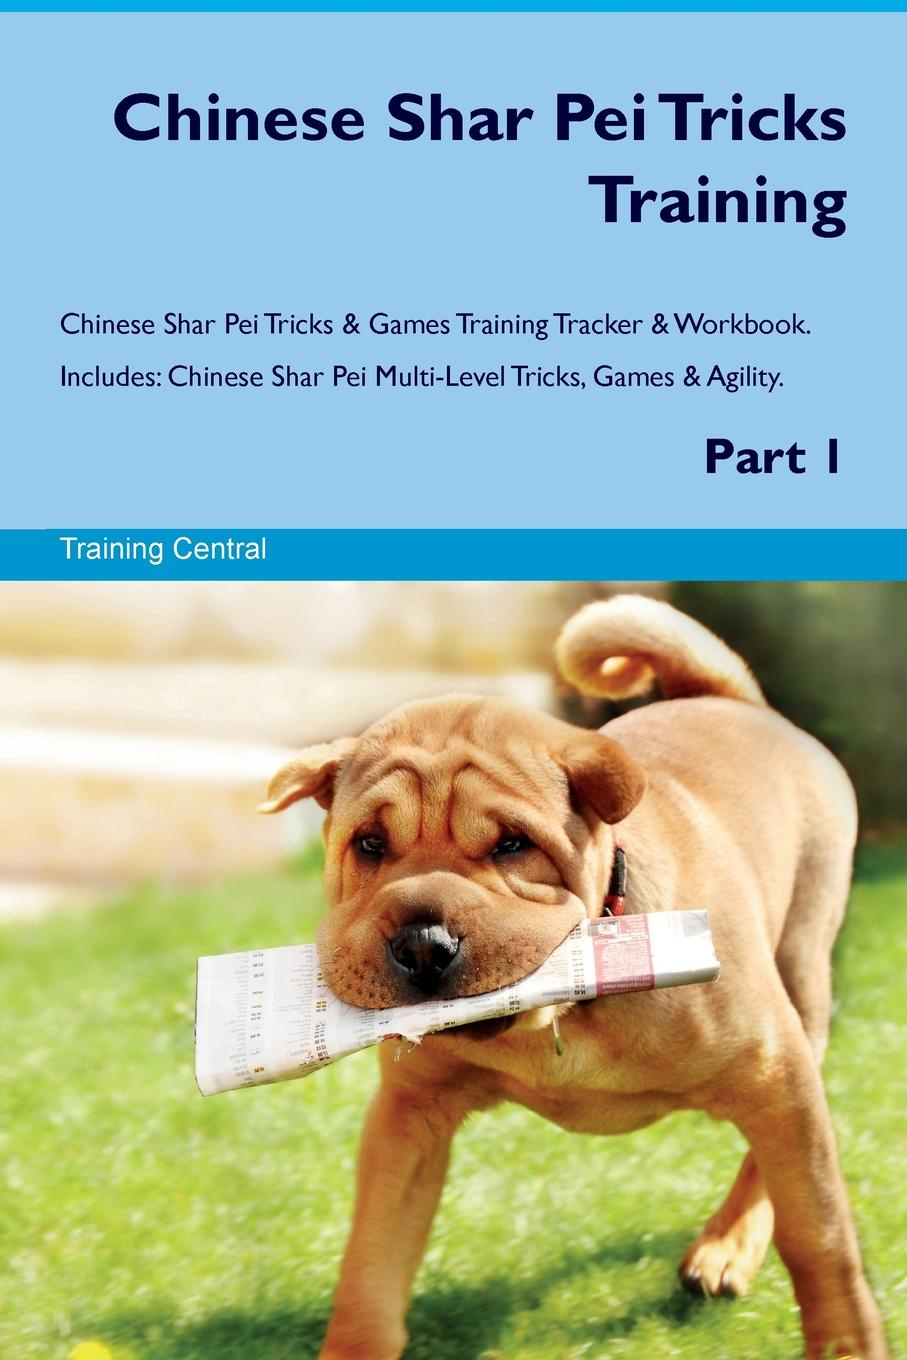 Training Central Chinese Shar Pei Tricks Training Chinese Shar Pei Tricks & Games Training Tracker & Workbook. Includes. Chinese Shar Pei Multi-Level Tricks, Games & Agility. Part 1